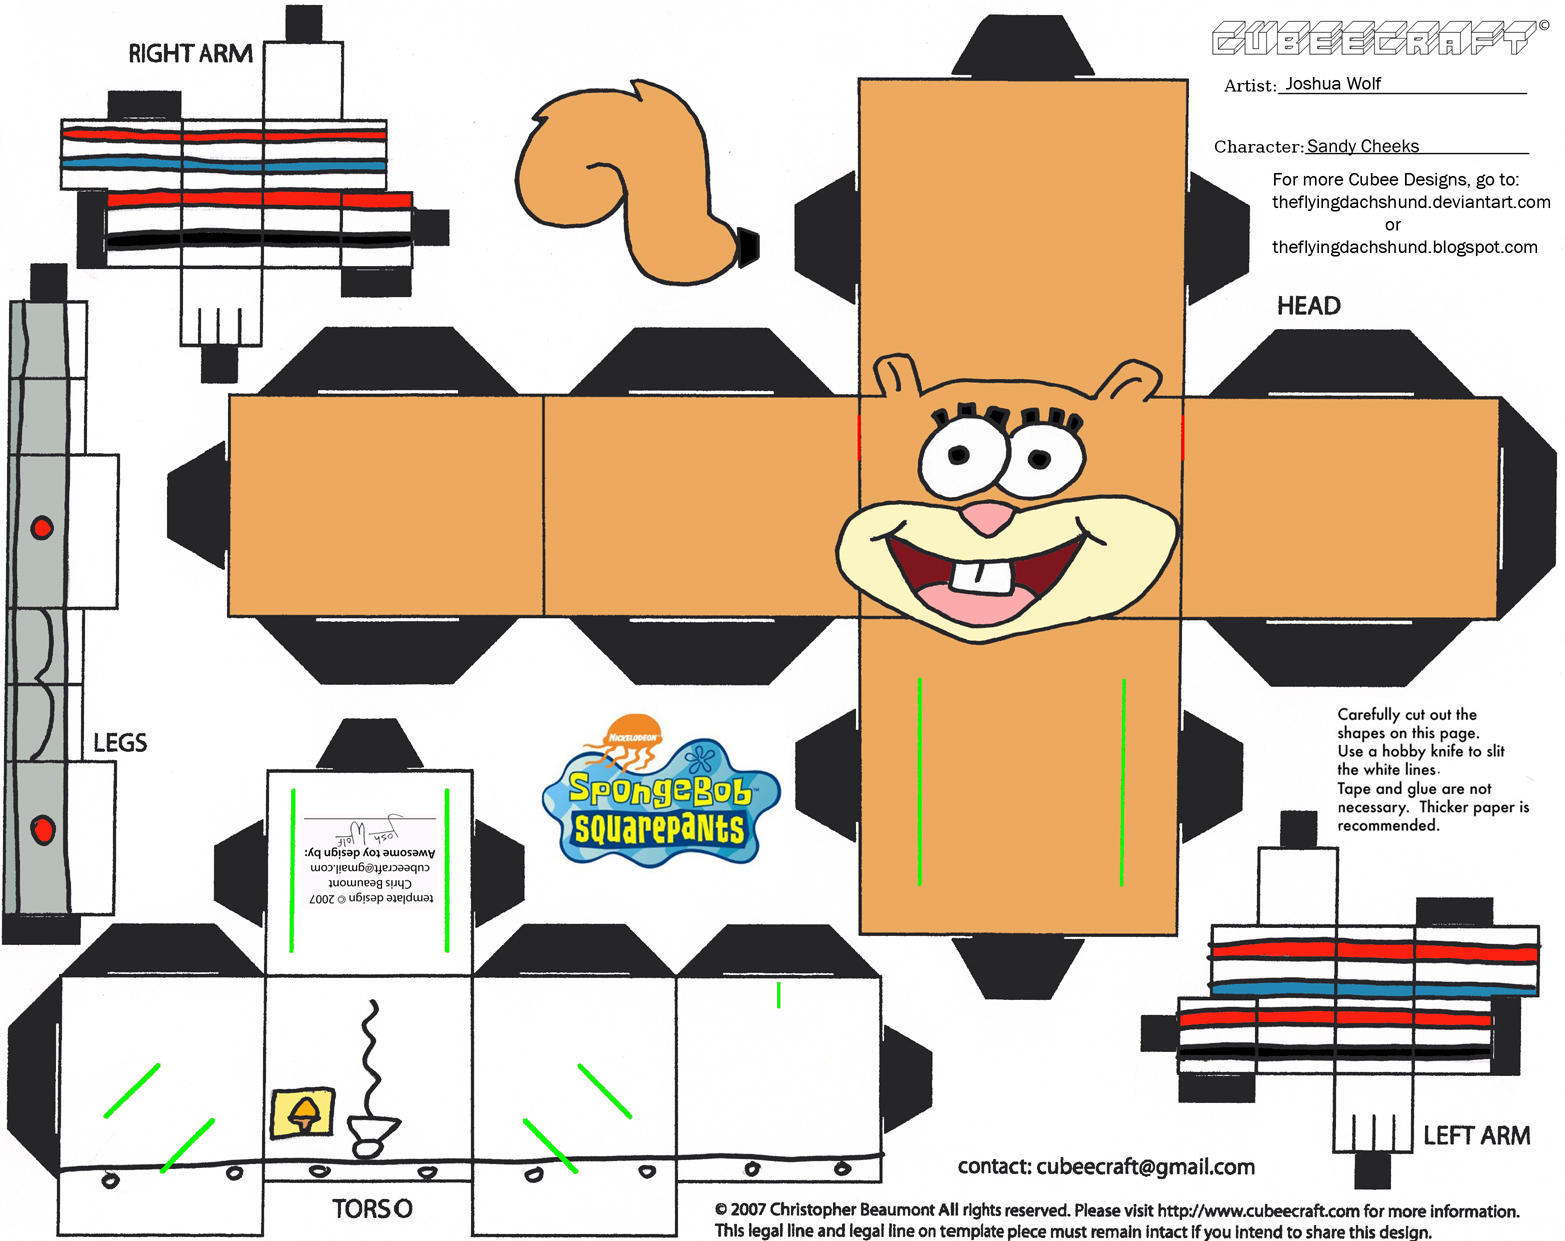 Ss sandy cheeks cubee by theflyingdachshund on deviantart for Cut out character template